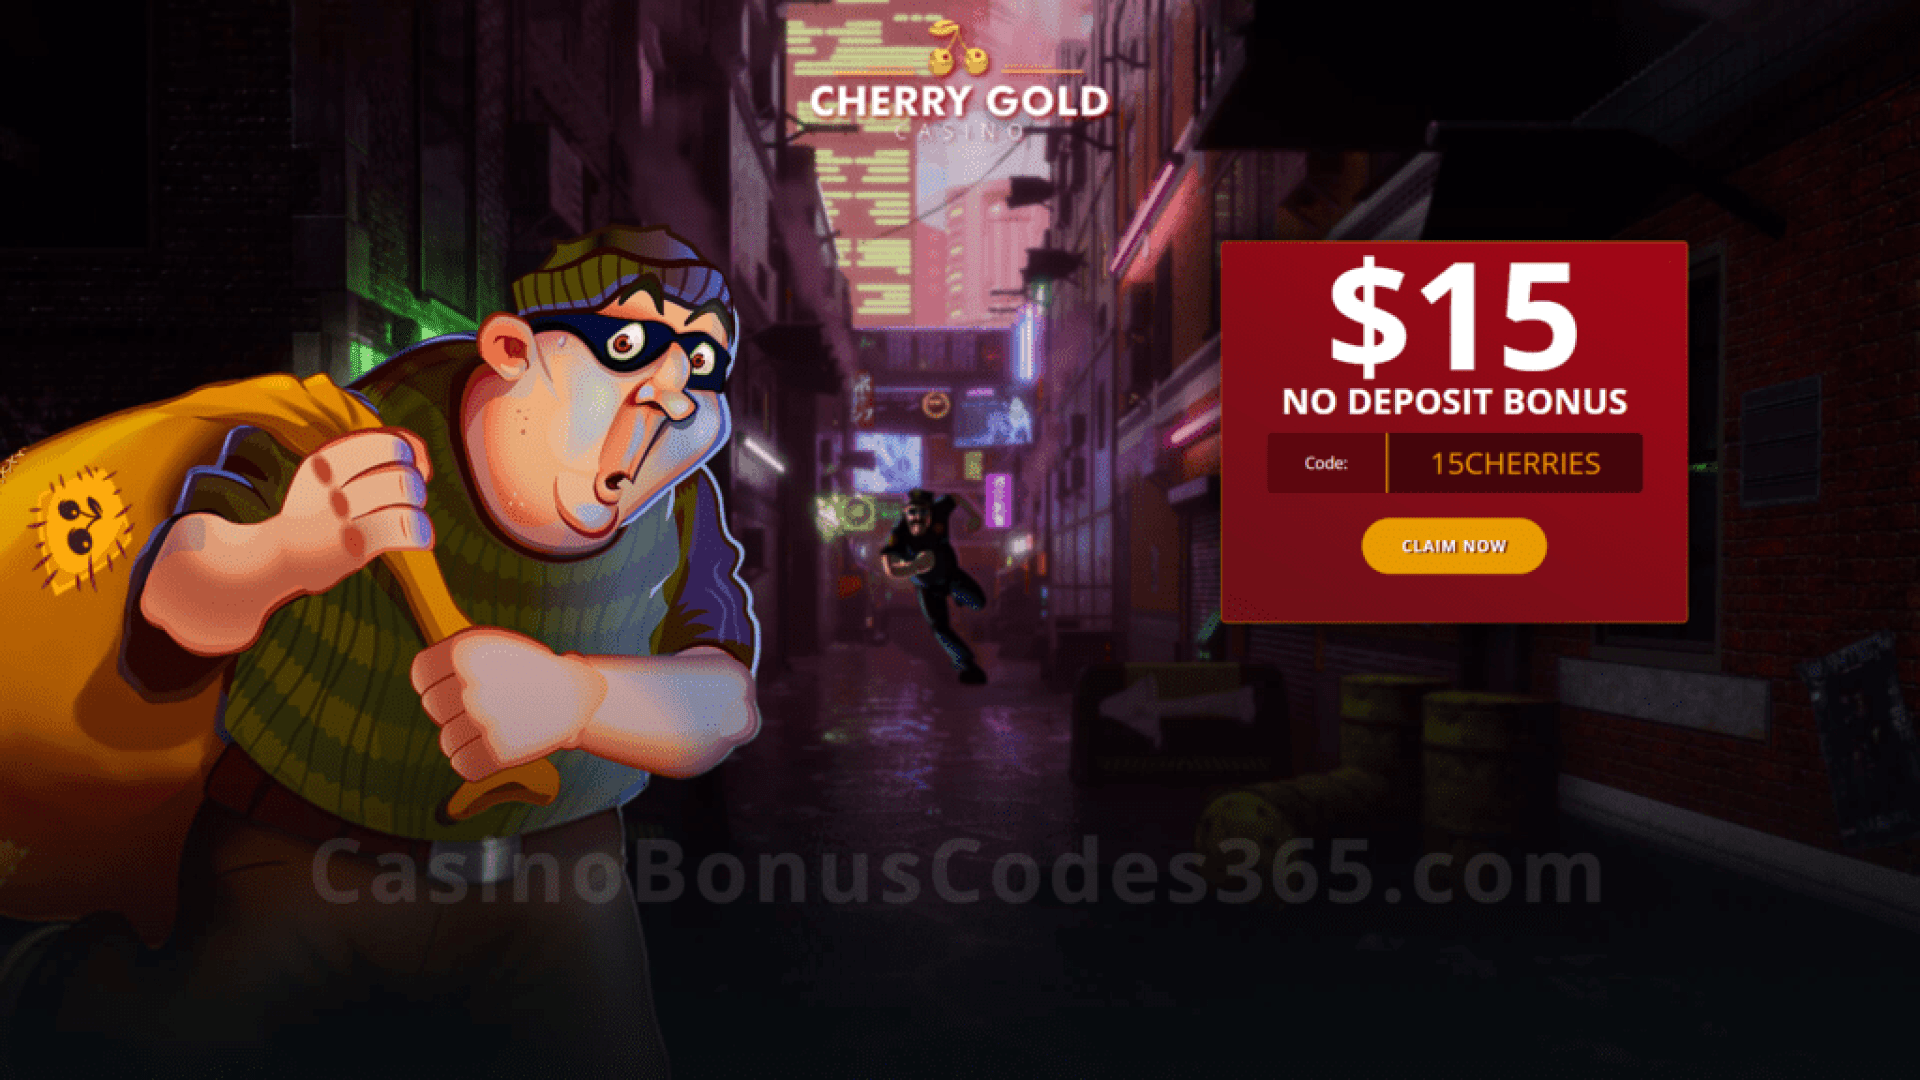 Cherry Gold Casino $15 FREE Chip Special No Deposit Deal